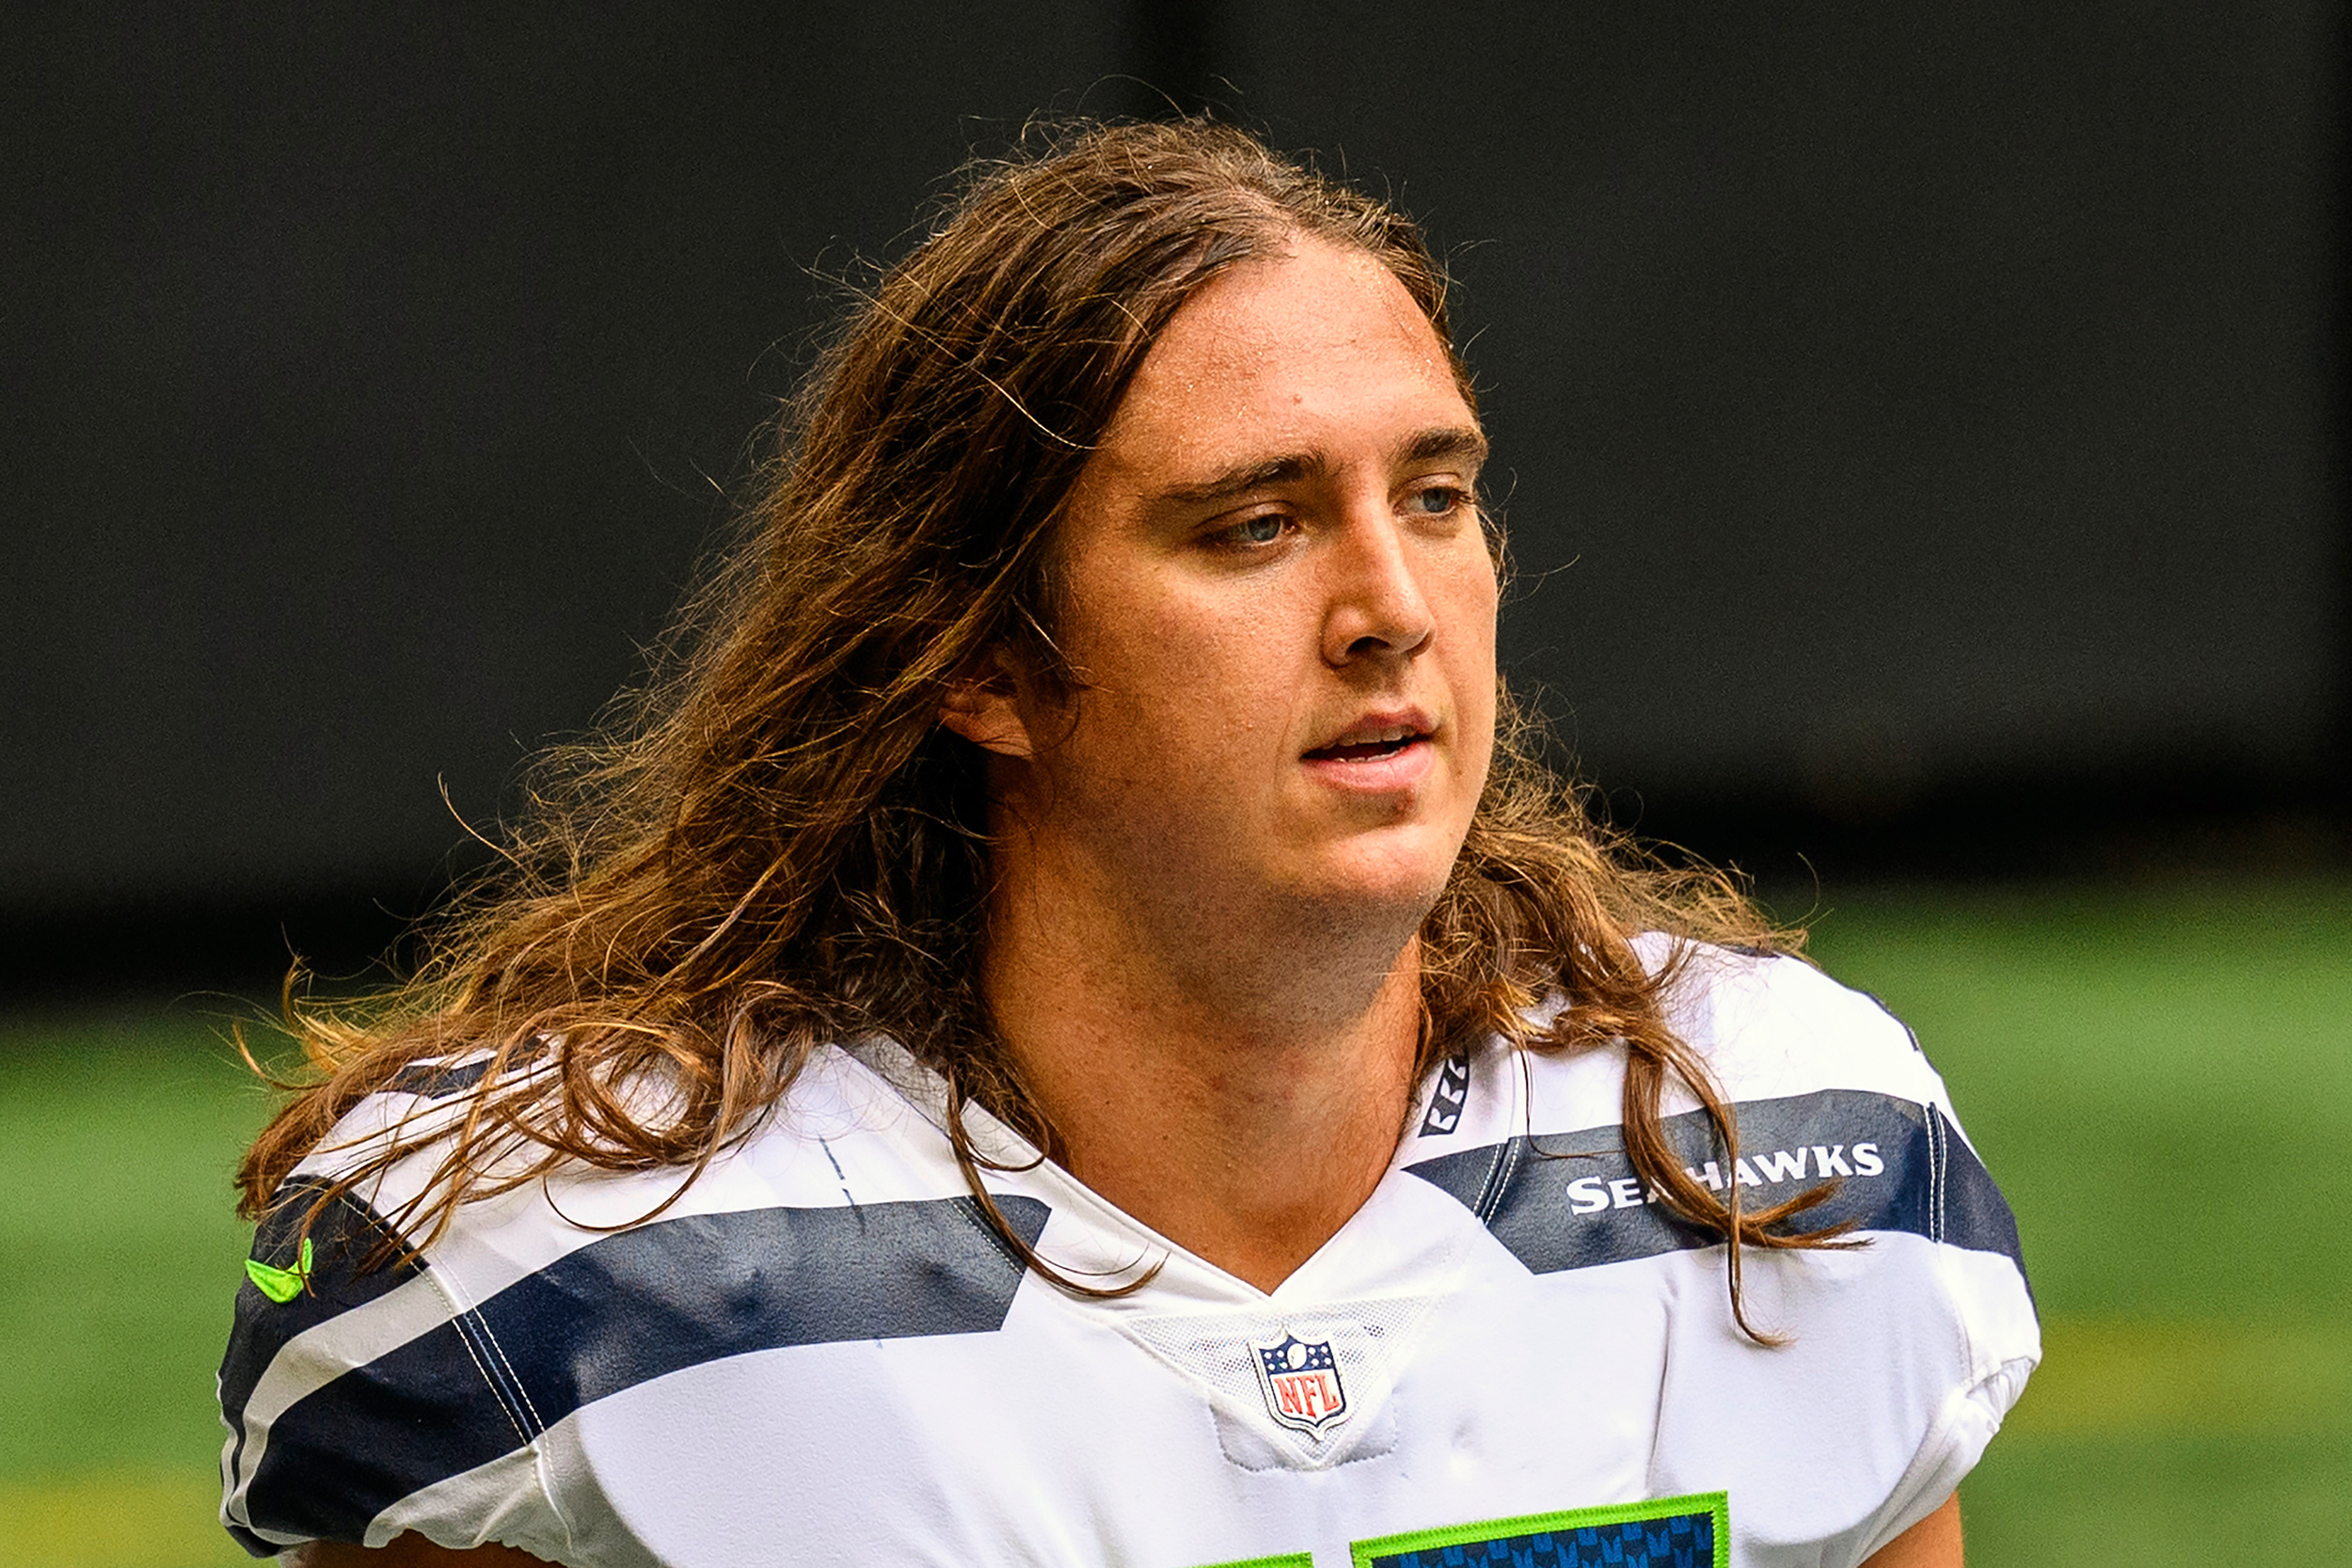 Offensive lineman Chad Wheeler arrested on suspicion of felony domestic violence, waived by Seattle Seahawks